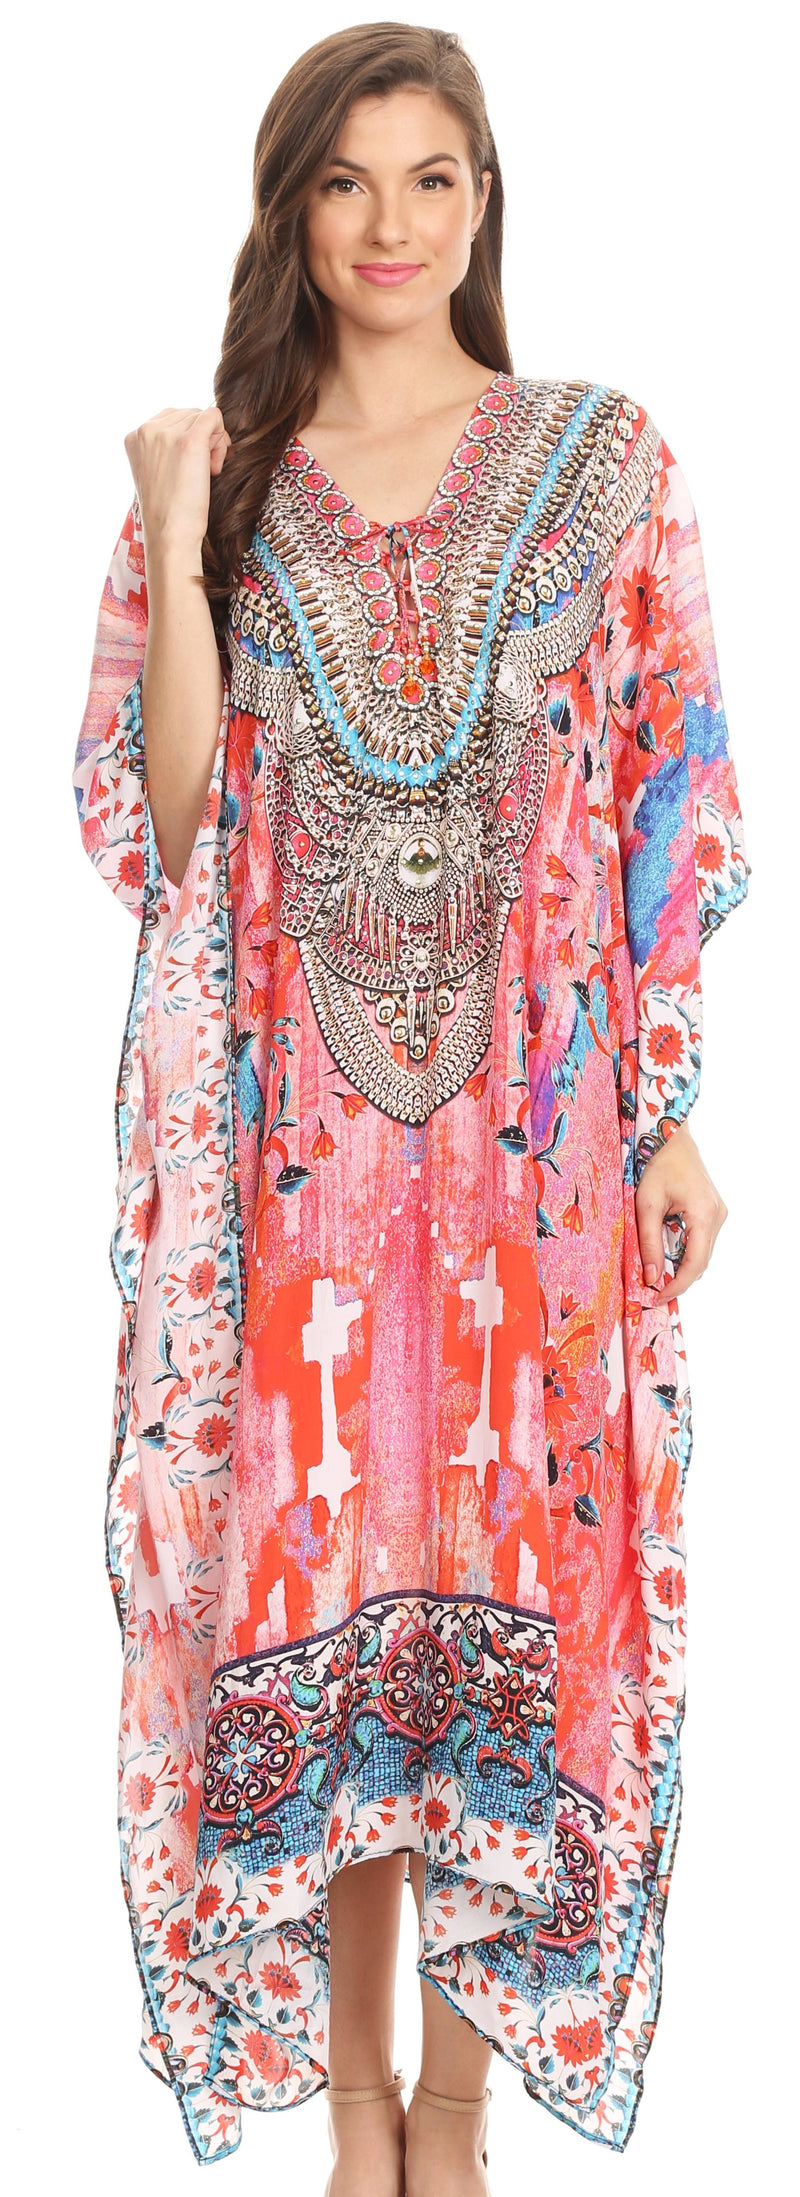 Sakkas Imani  V-neck Silky Lightweight Colorful Flowy Rhinestone Kaftan / Cover Up